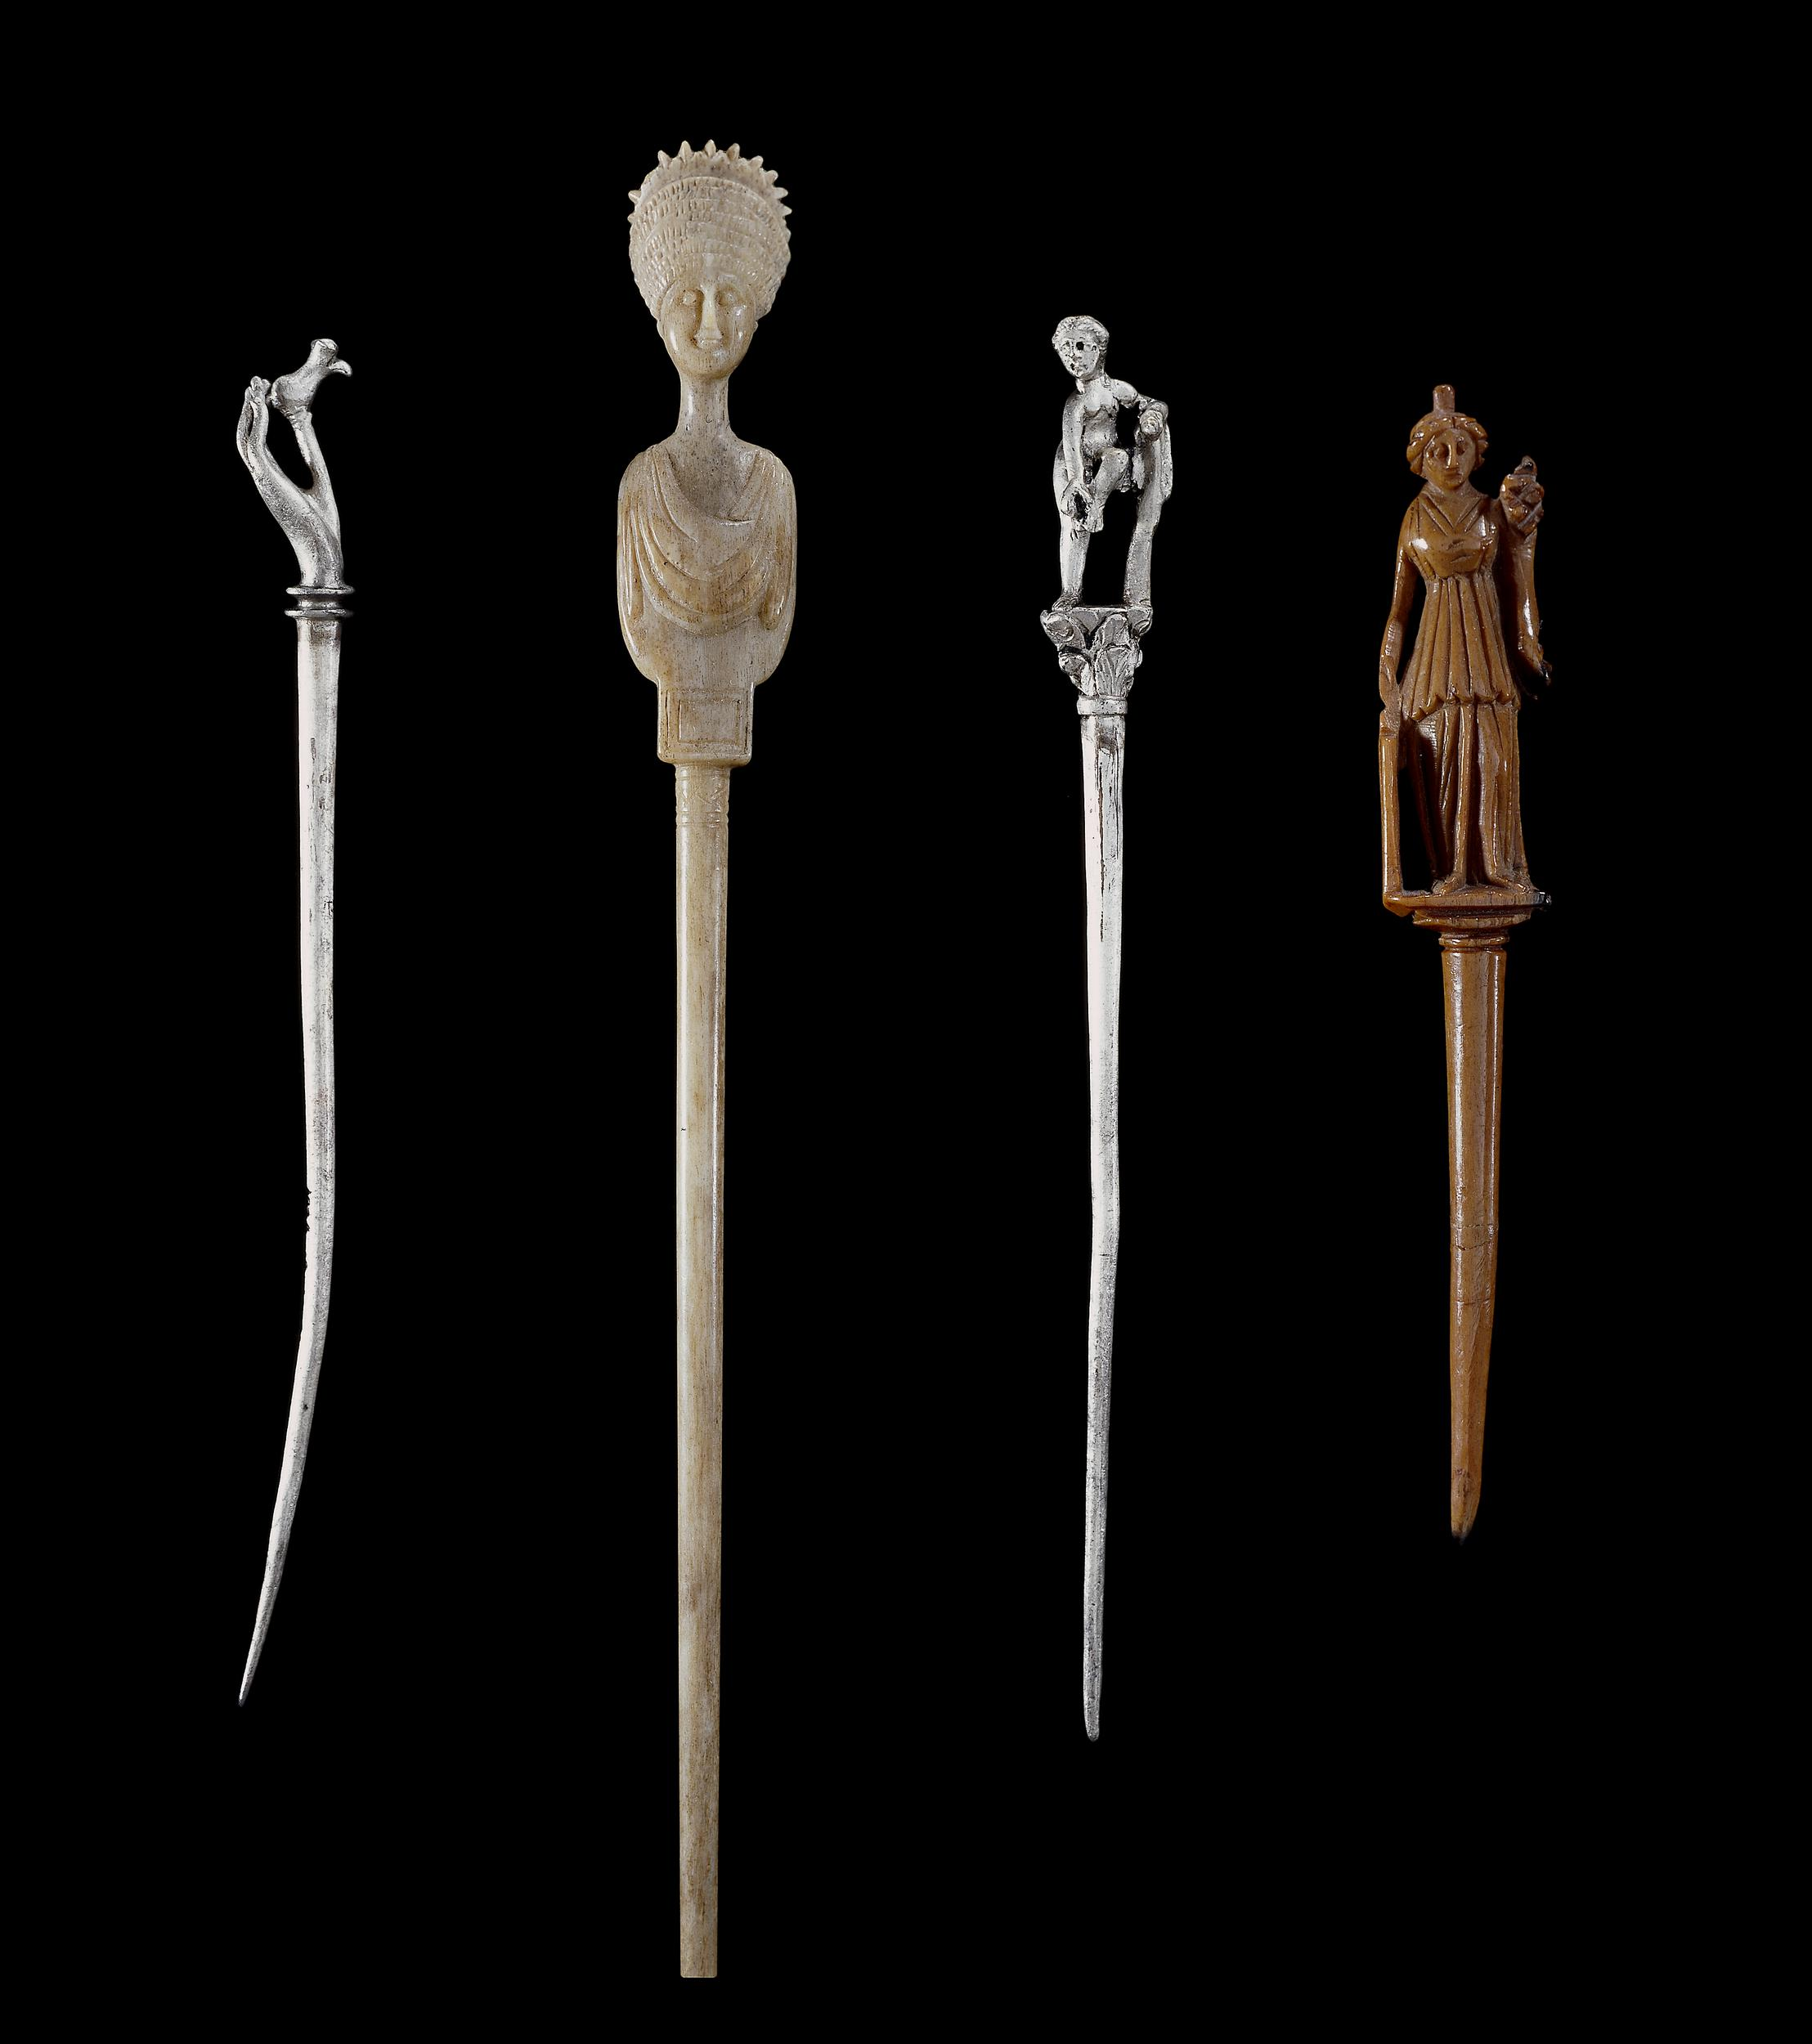 Collection of Romano-British Era Bone and Silver Hairpins (Acus Crinalis). © The Trustees of the British Museum